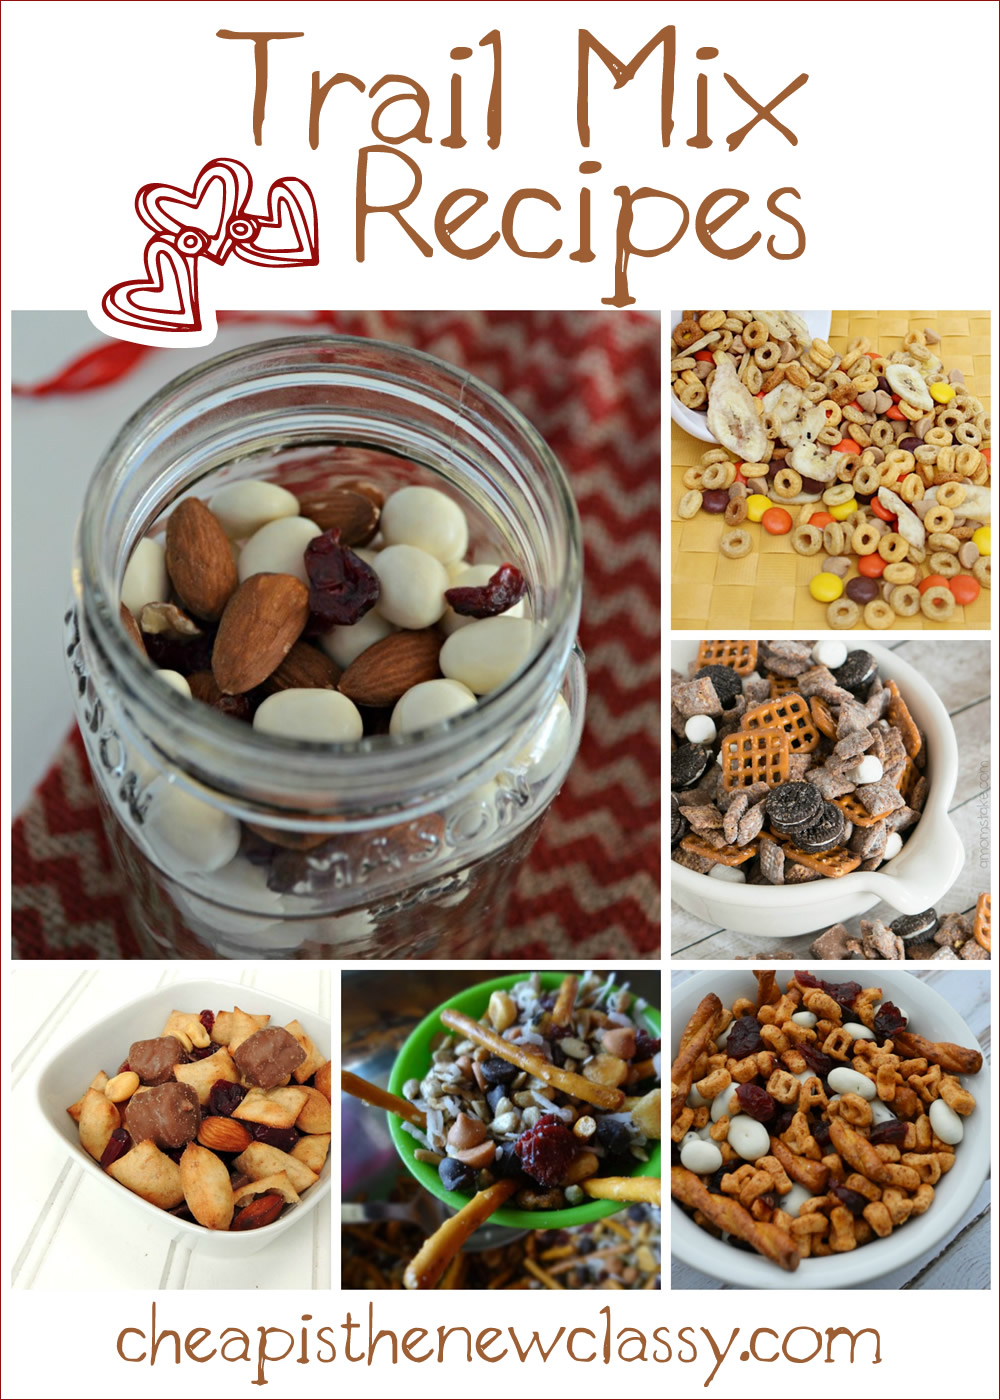 August 31st is National Trail Mix Day - Celebrate With One Of These 10 Fun Trail Mix Recipe Ideas | Cheap Is The New Classy